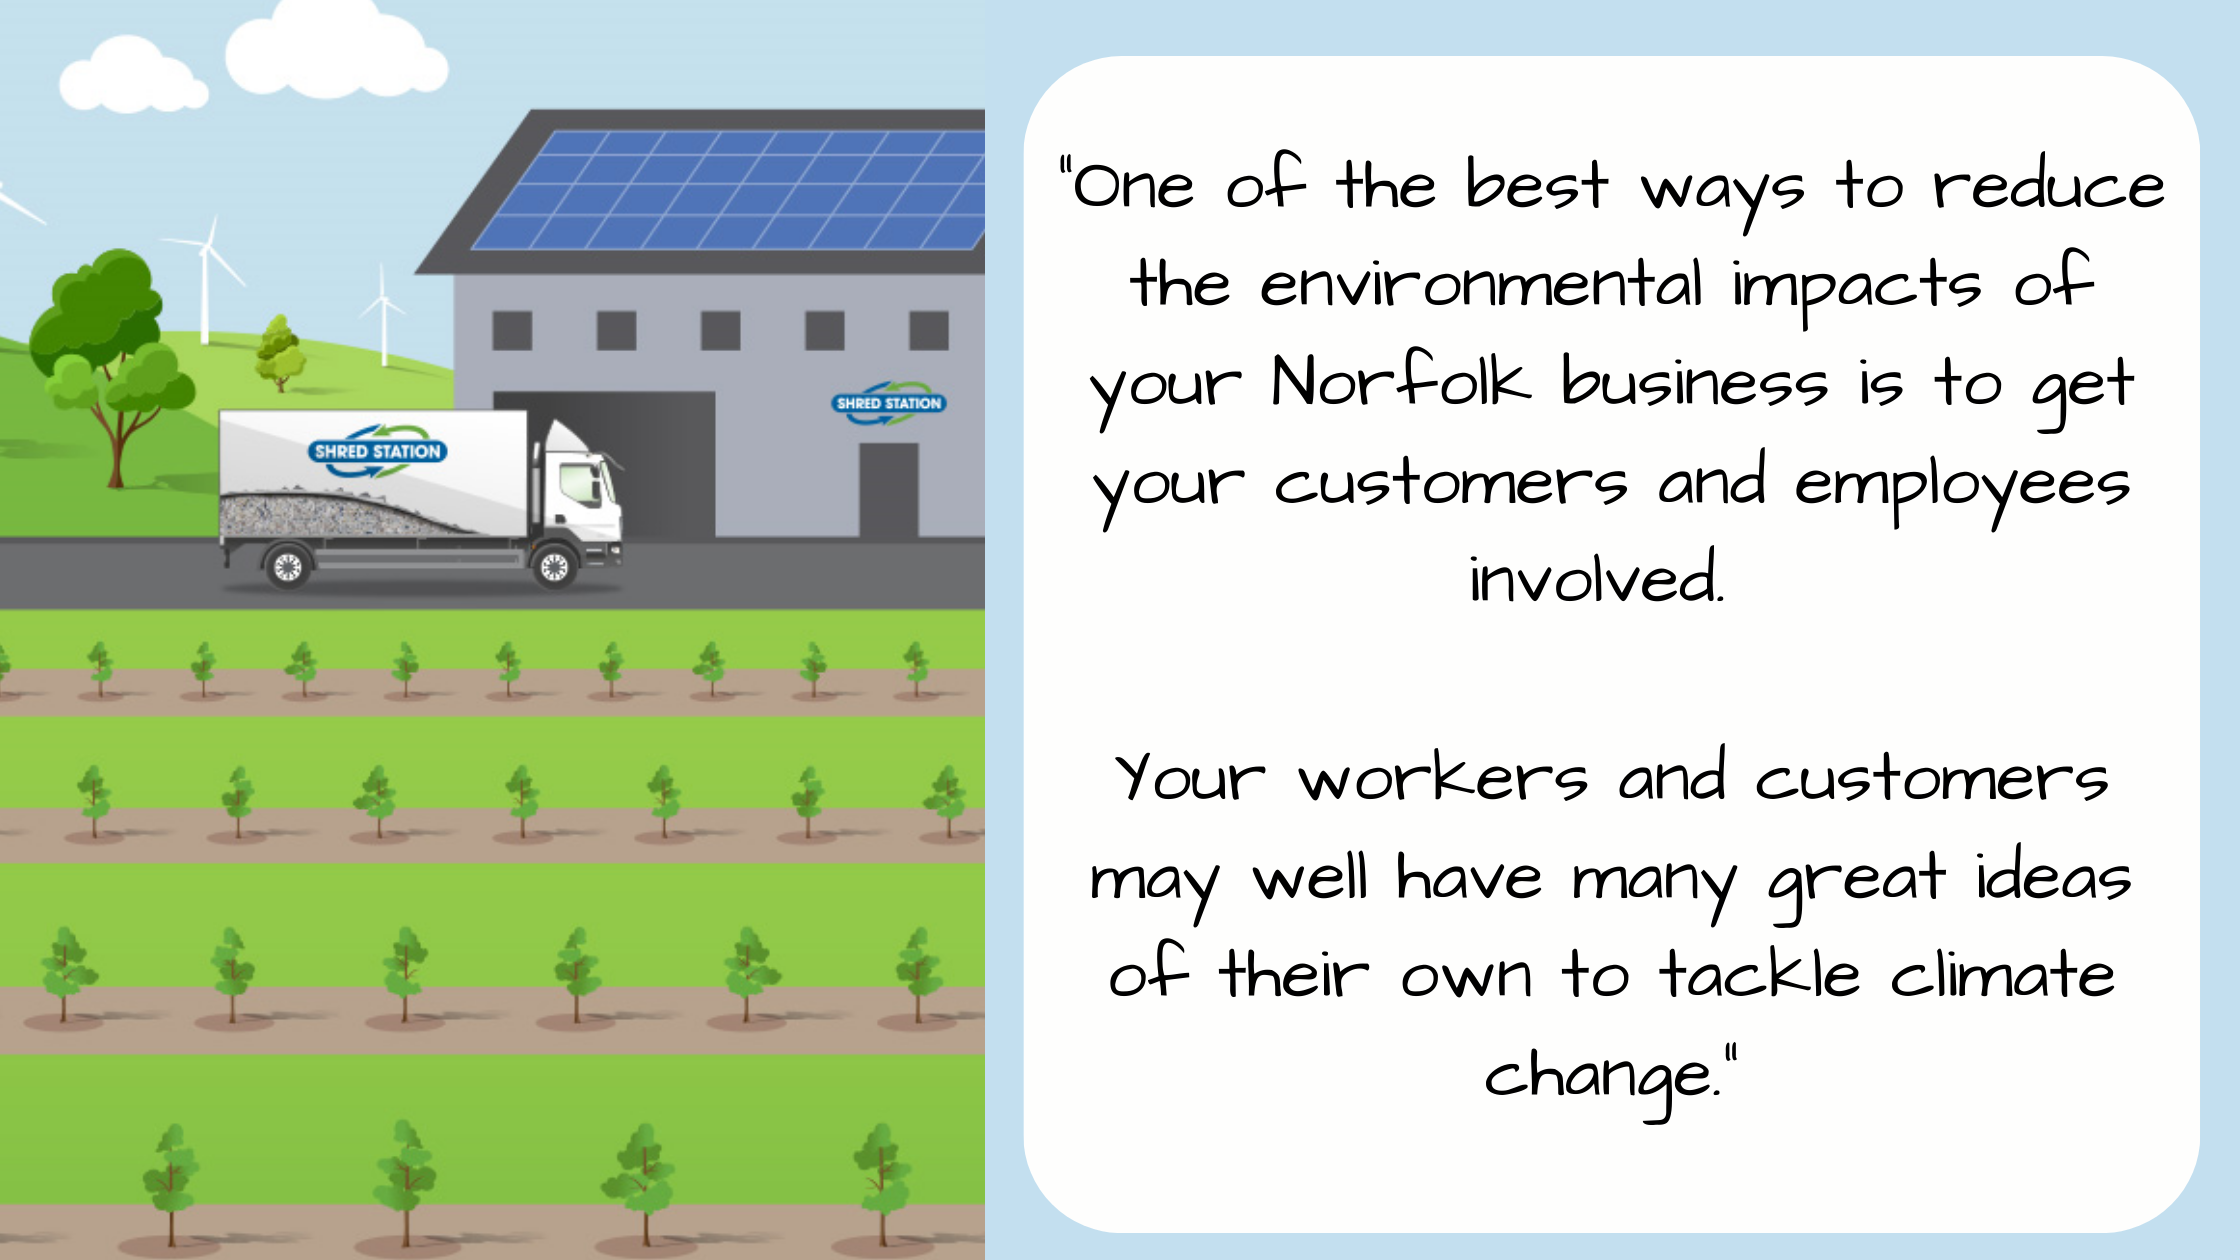 How to reduce the environmental impacts of your Norfolk business